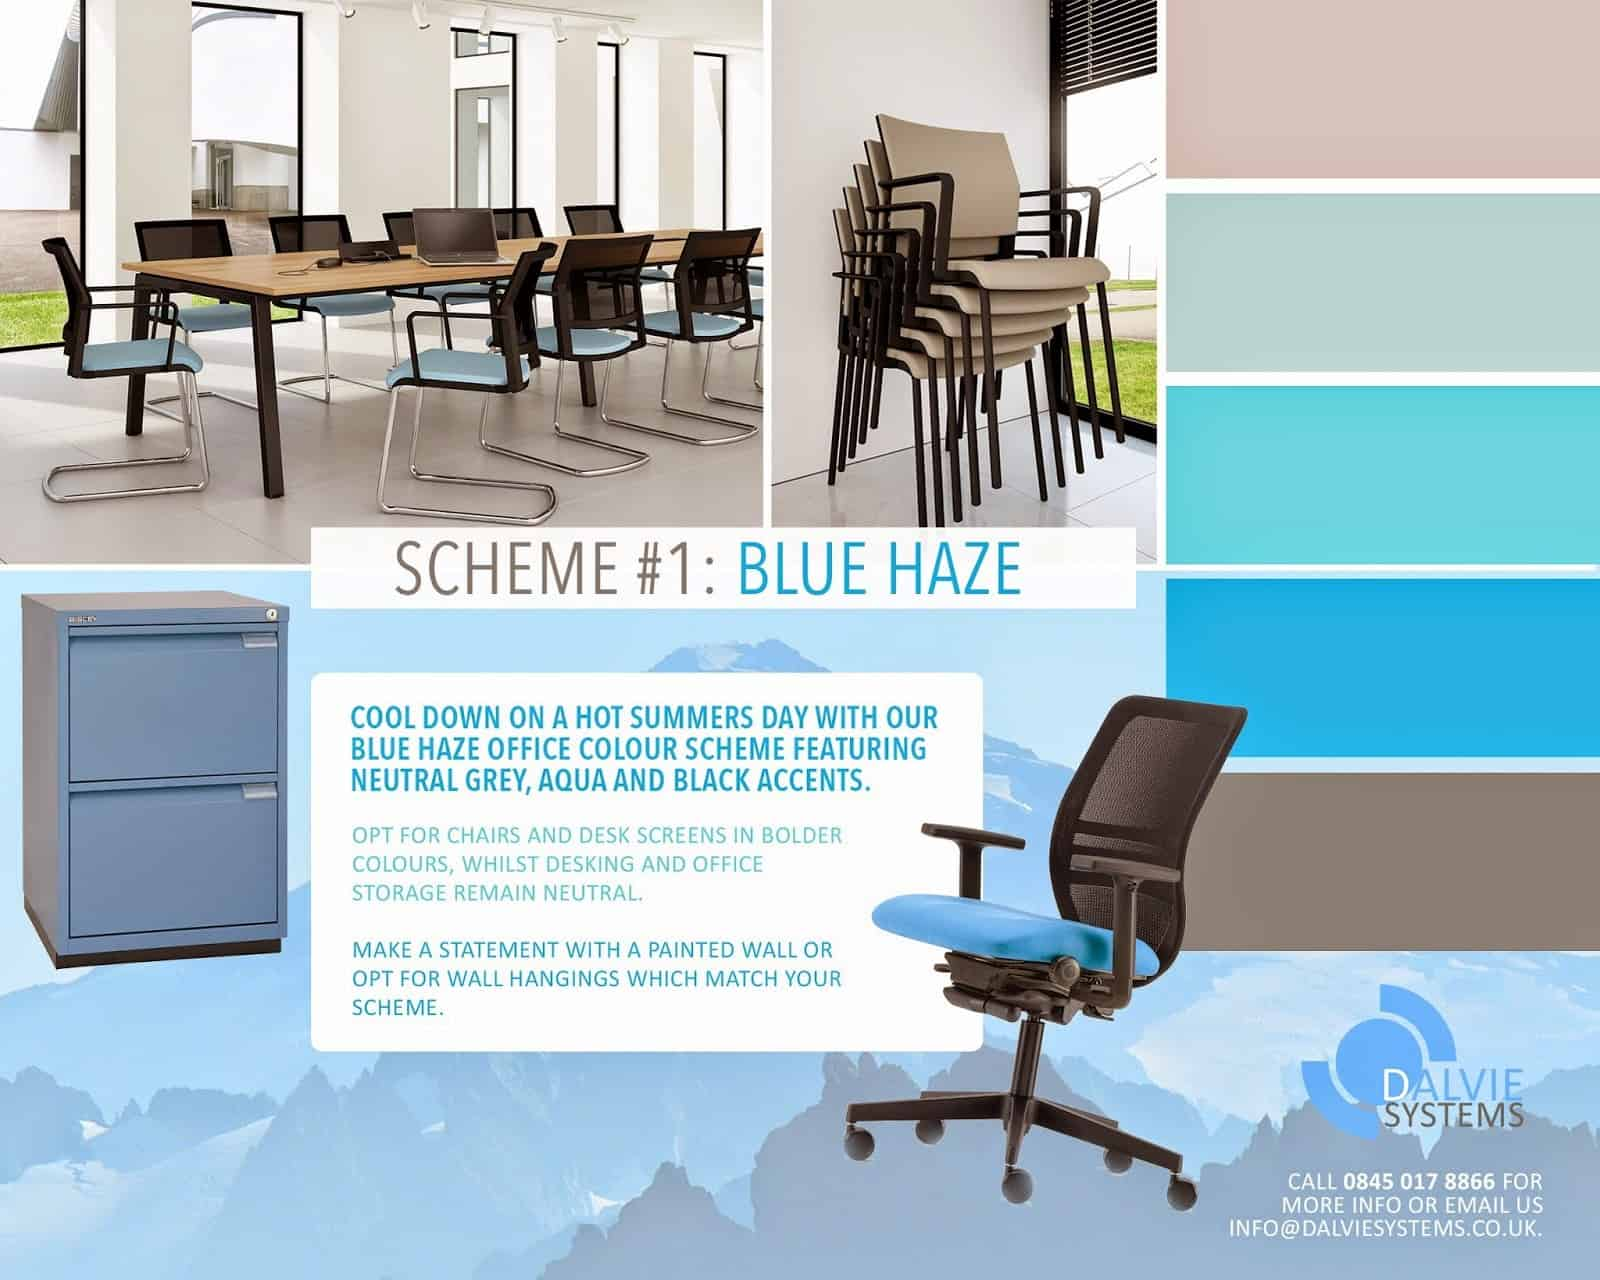 #1 Blue Haze inspired by Dalvie Systems